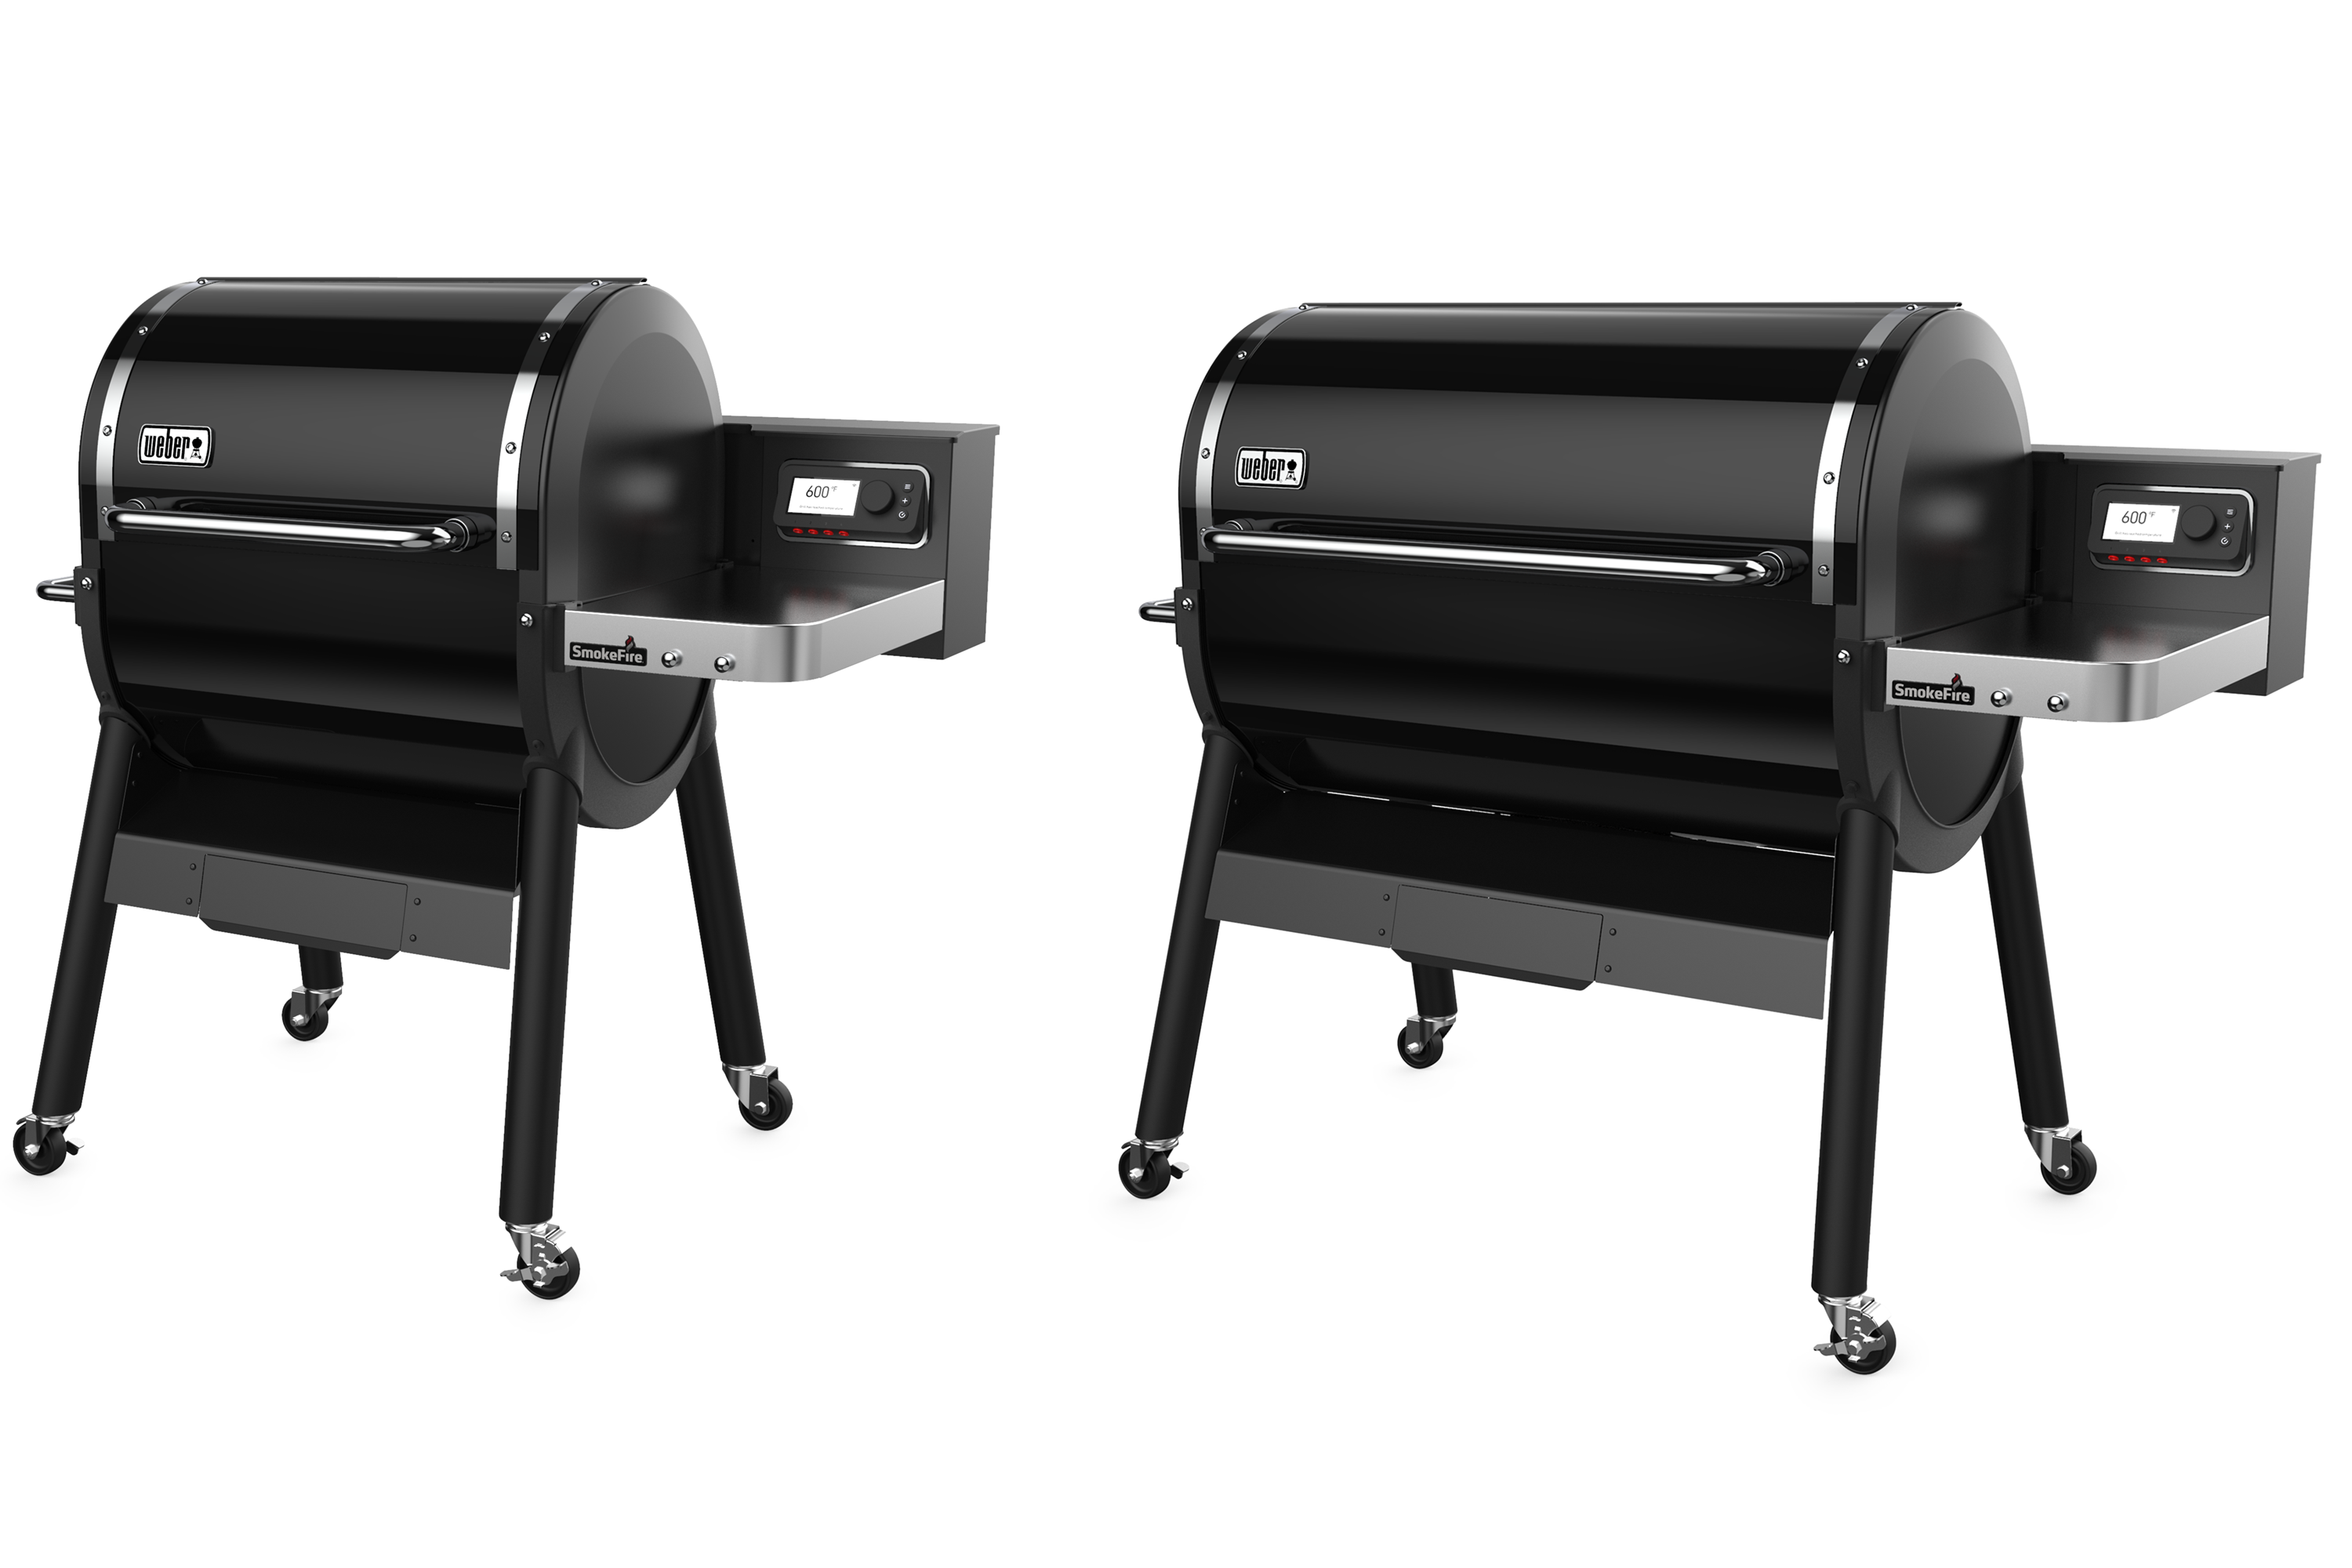 Weber Launches Its First Wood Pellet Grill - Best Grills